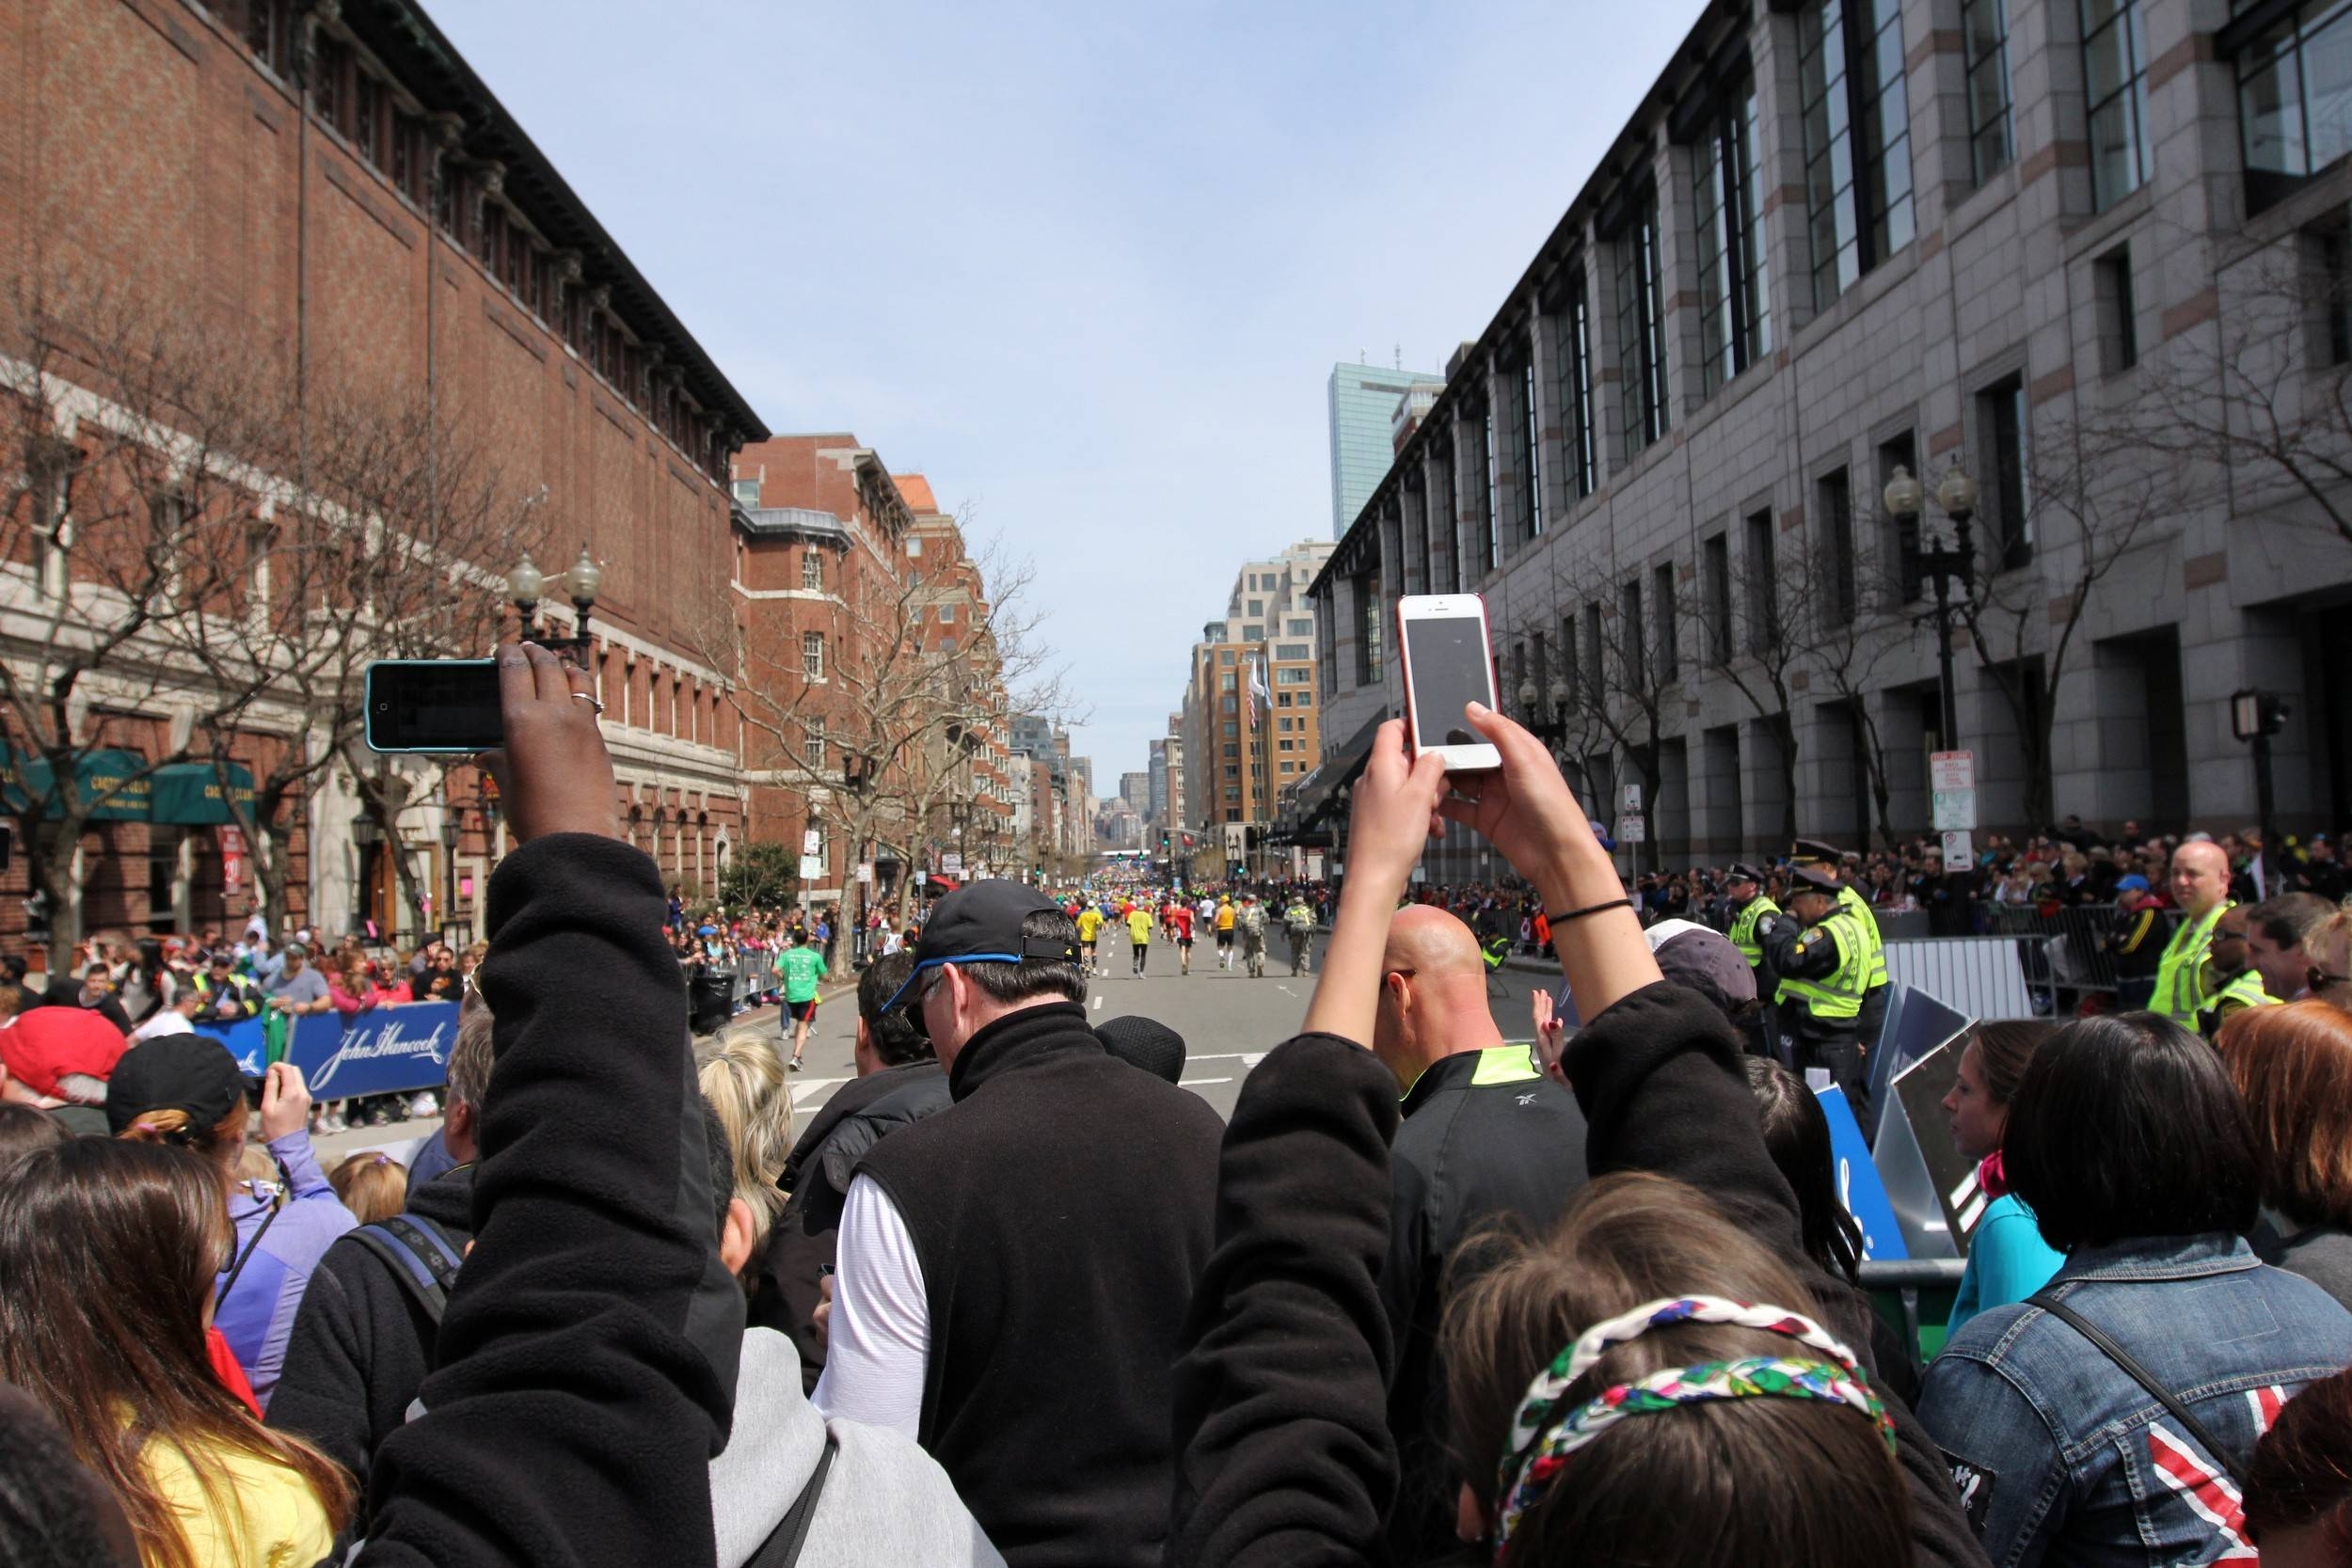 Spectators near the finish line take photos with camera phones just before two bombs exploded at the Boston Marathon on April 15, 2013. Many runners say they're eager to return to the race this year.